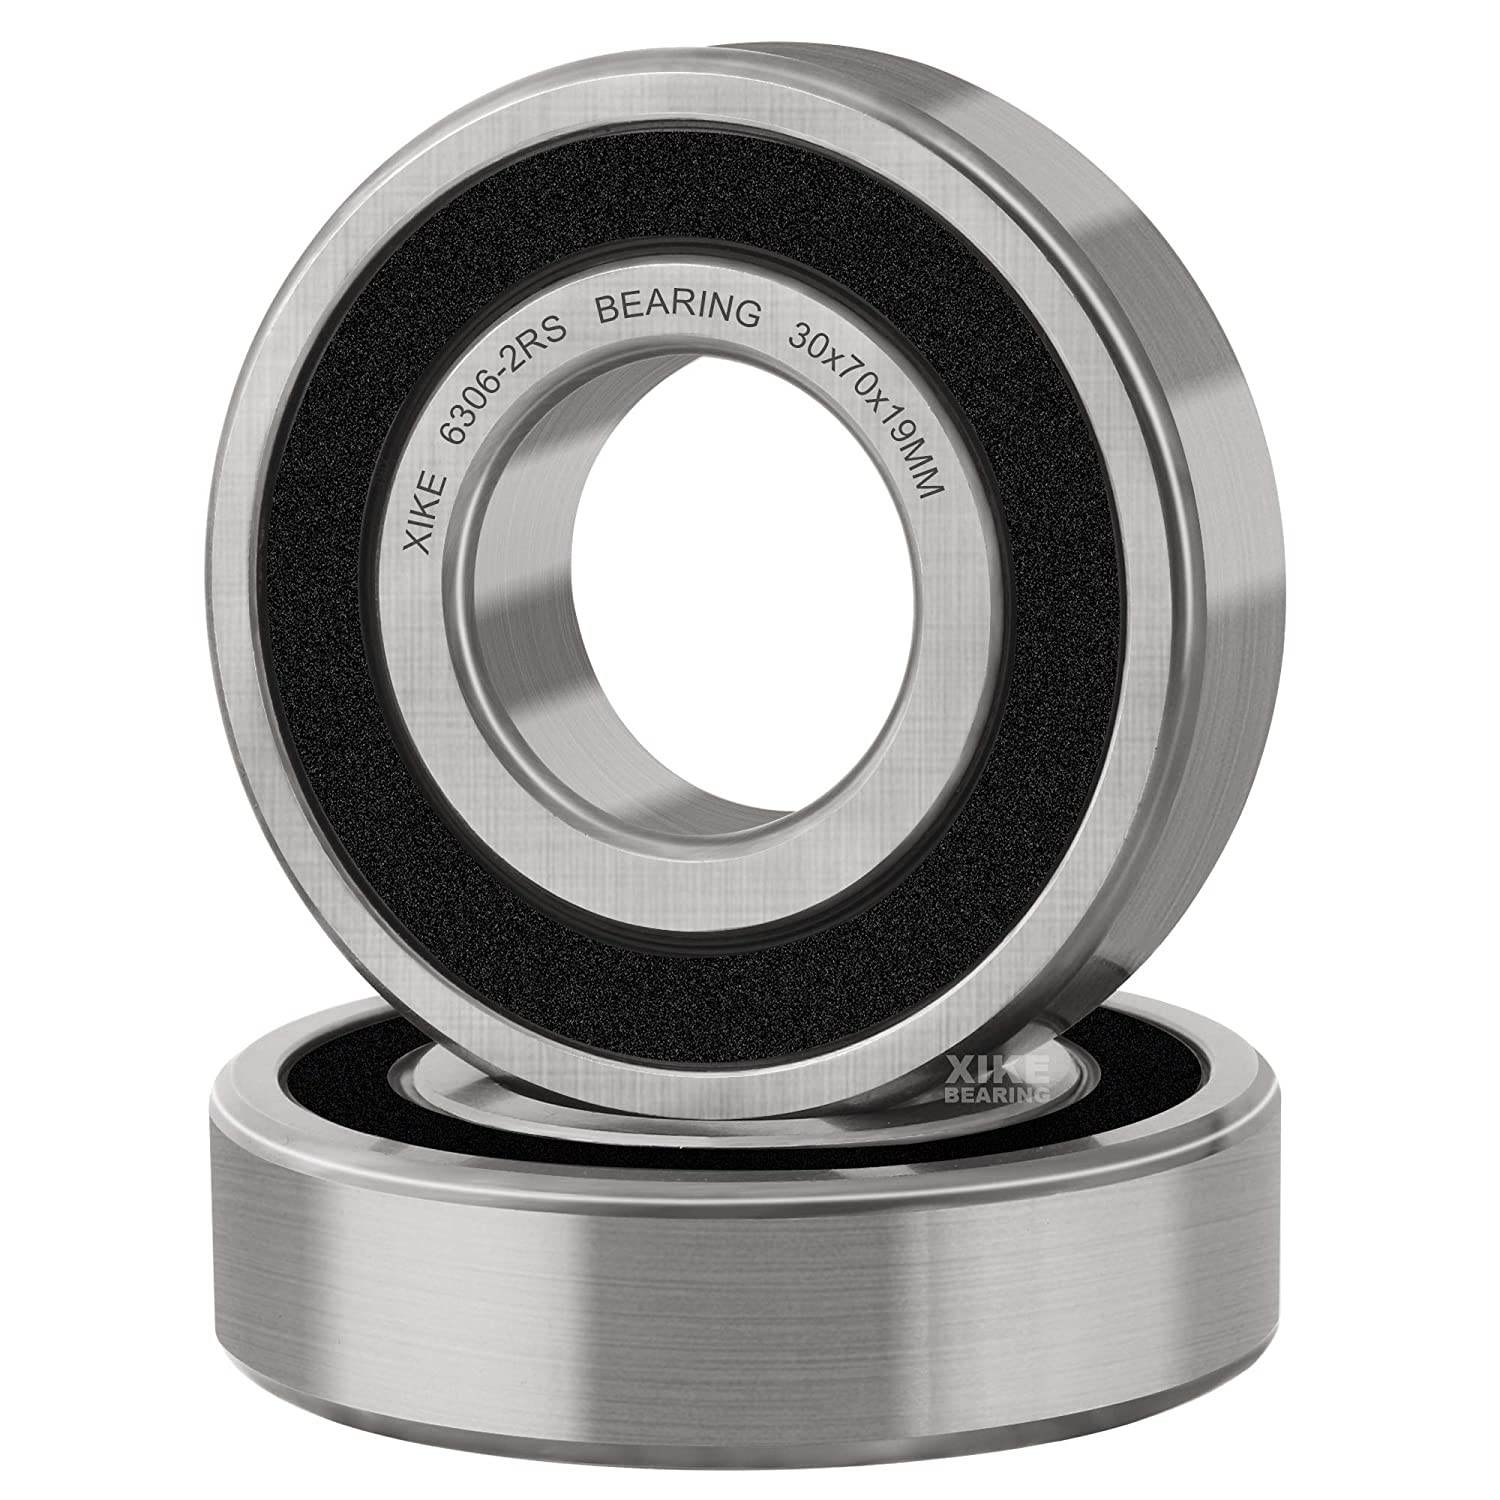 XiKe 6306-2RSx2Pcs Double In stock Seal Large discharge sale and Pre-Lubricated B Groove Deep